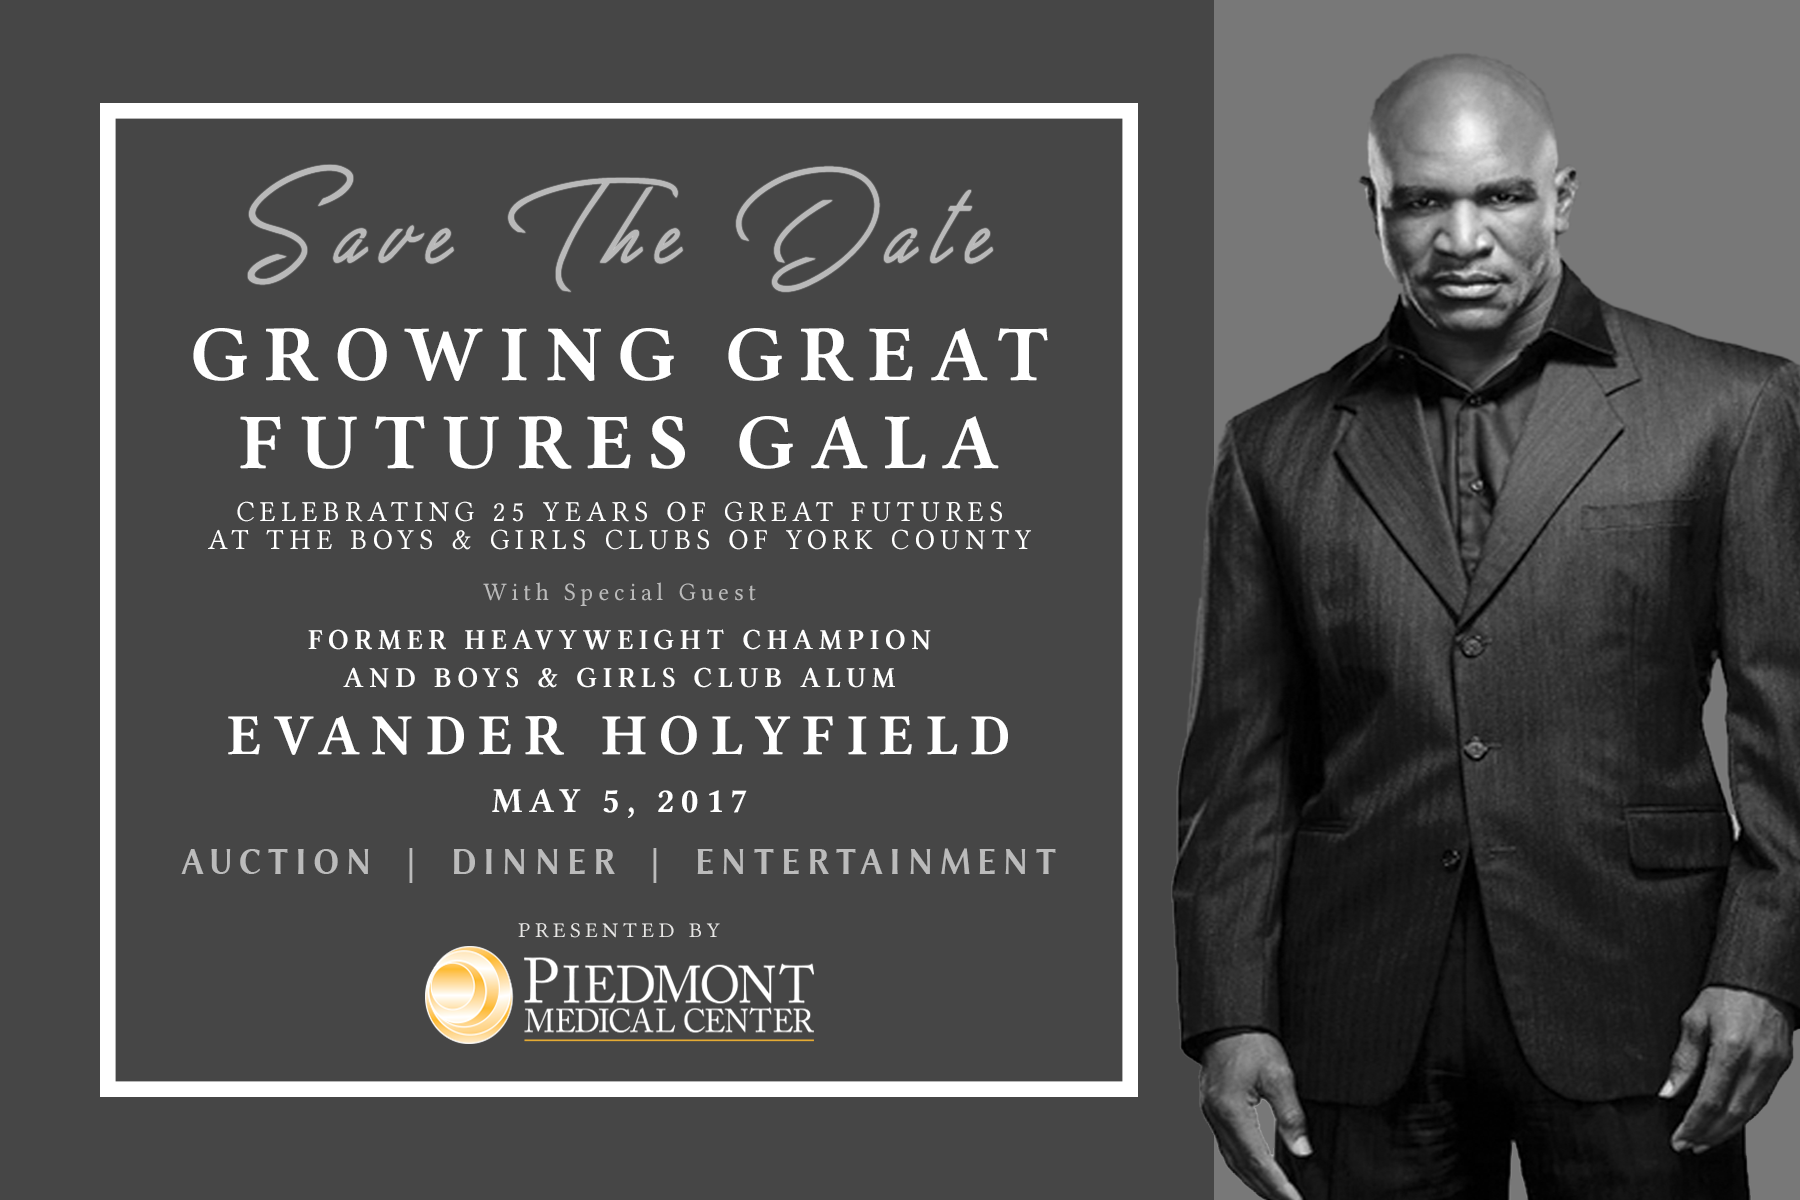 Growing Great Futures Gala